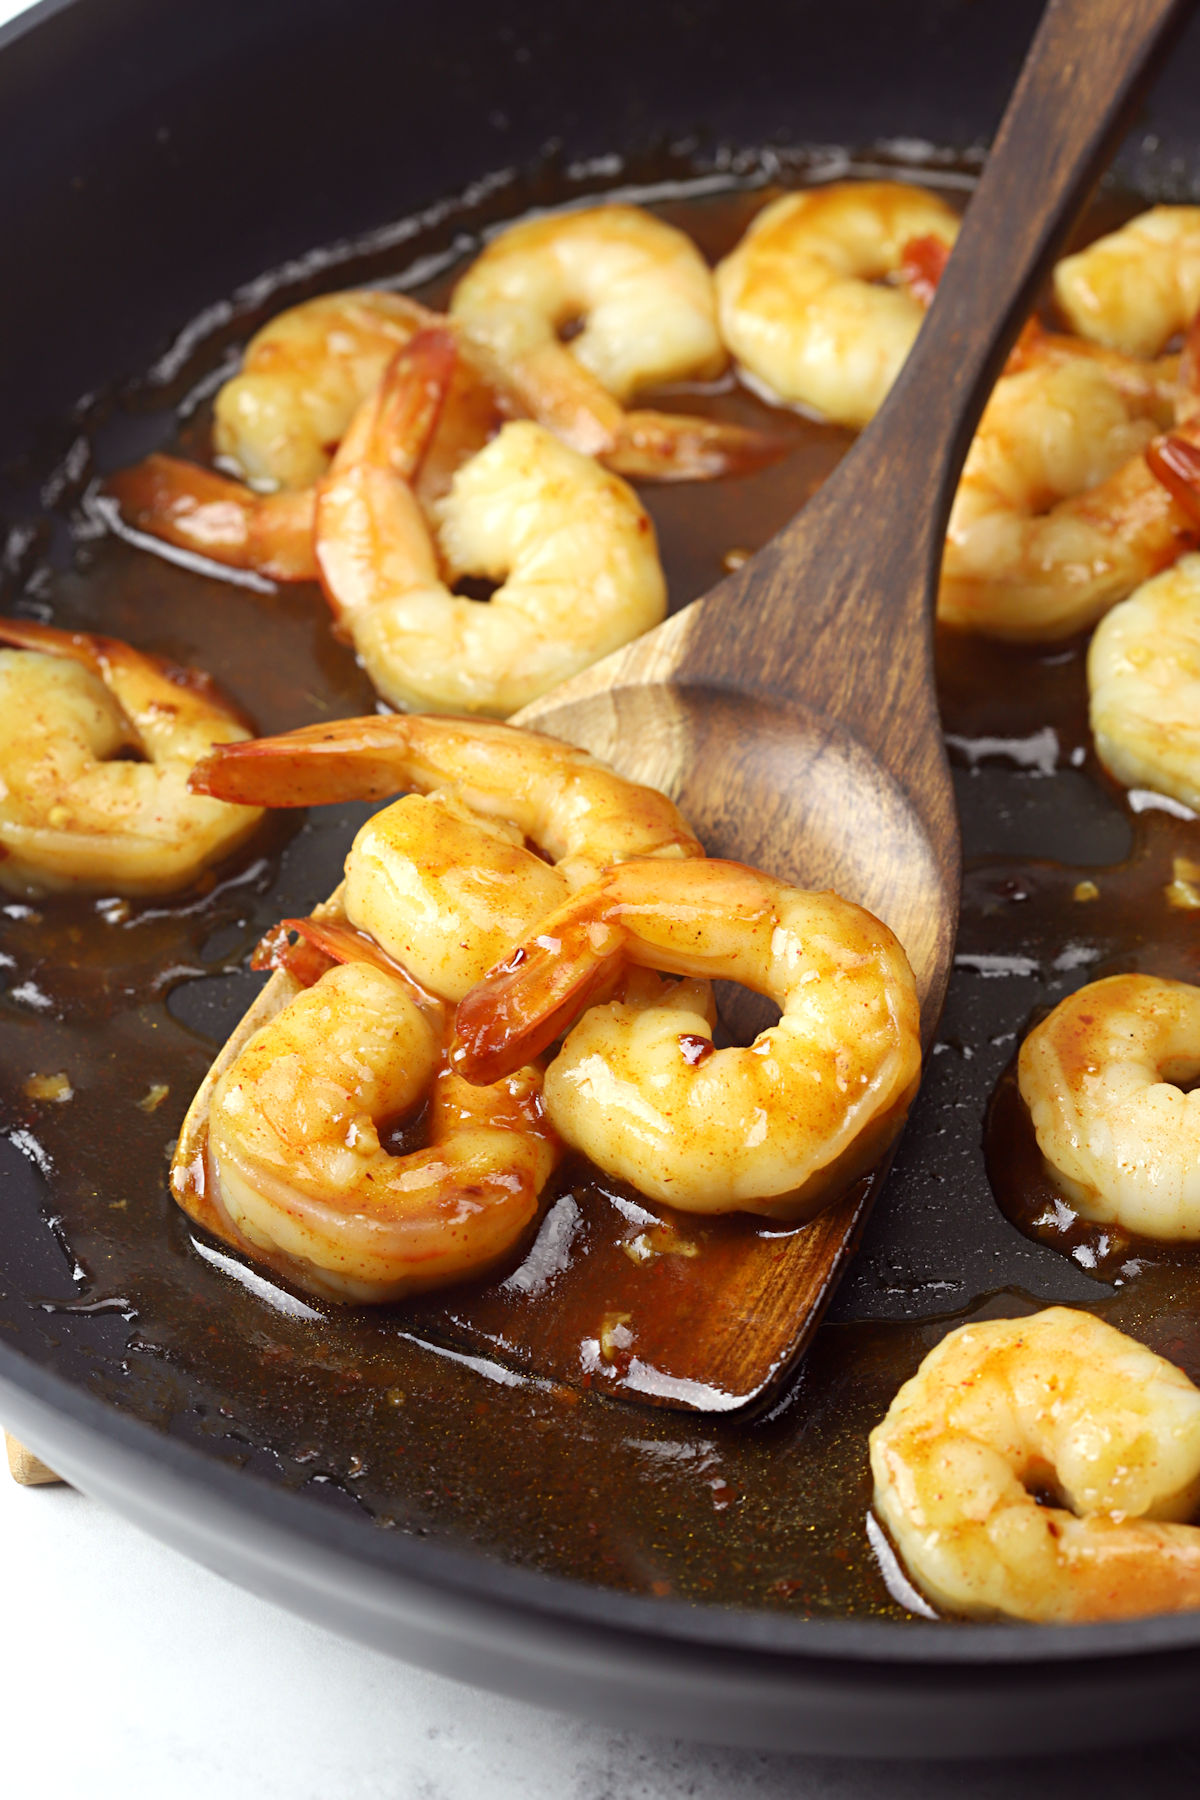 Wooden spatula scooping shrimp from a skillet.